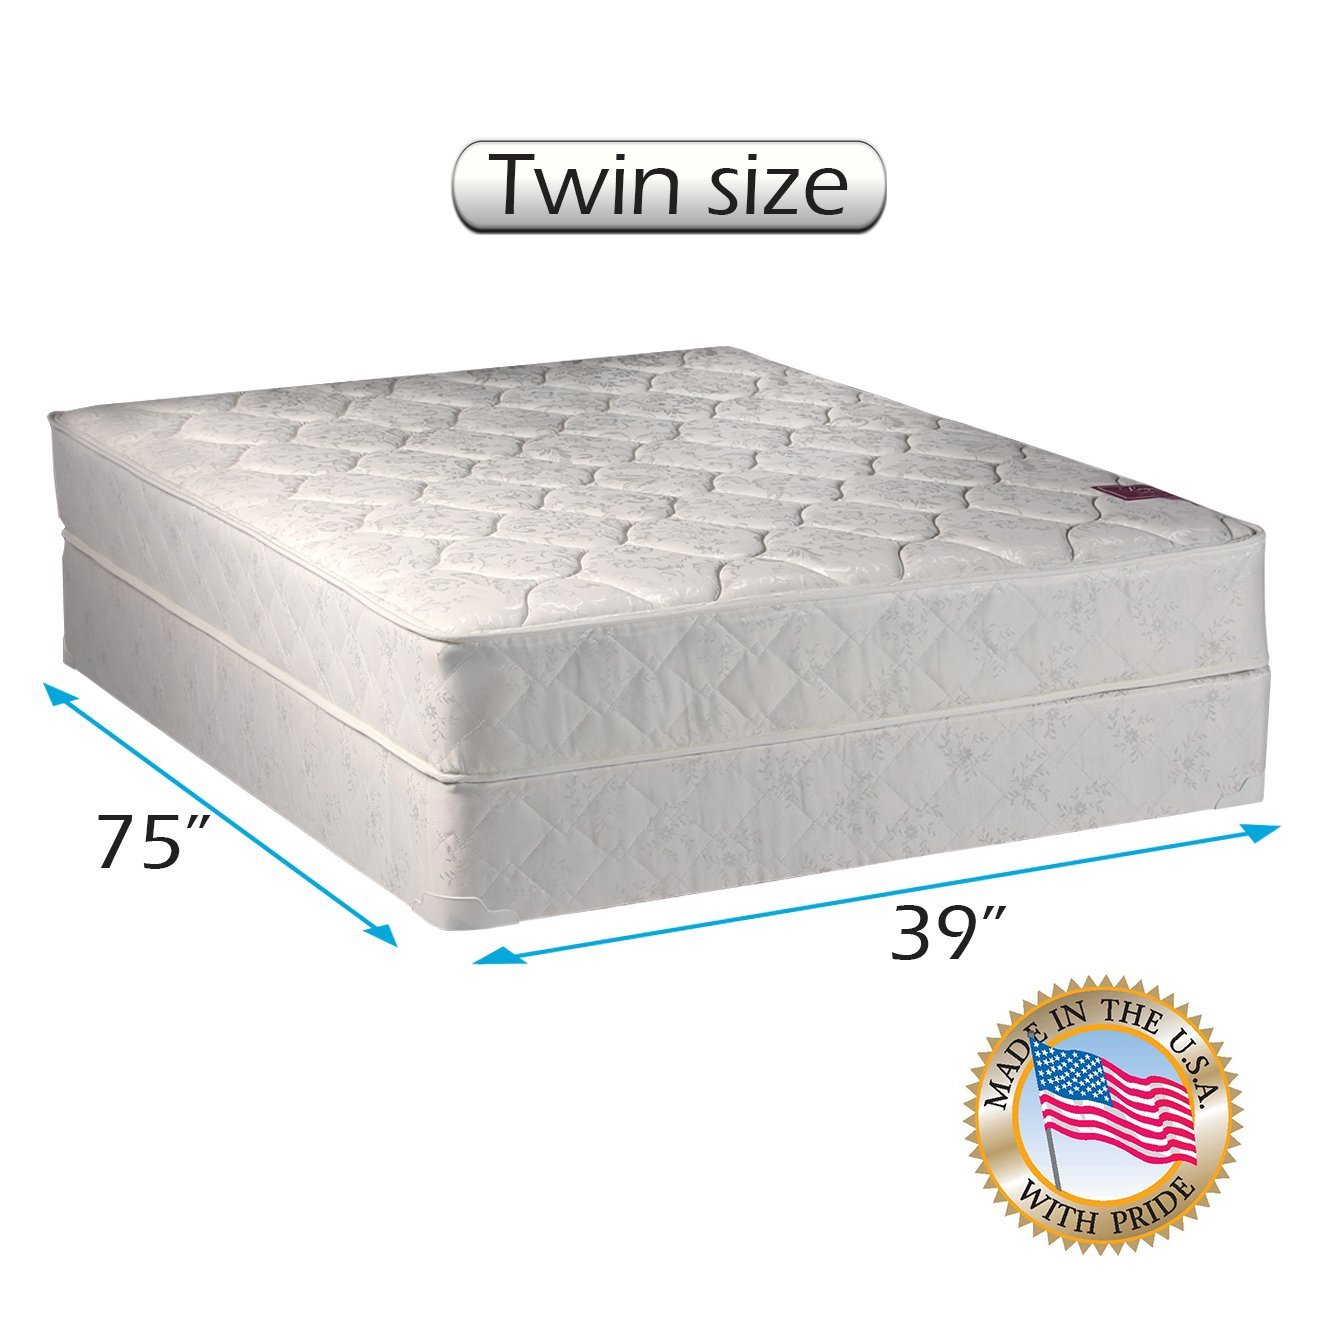 "American Legacy Innerspring Coil Twin Size (39""x75""x8"") Gentle Firm, Mattress and Box Spring Set - Fully assembled, Orthopedic, Good for your back, Superior Quality by Dream Solutions USA"